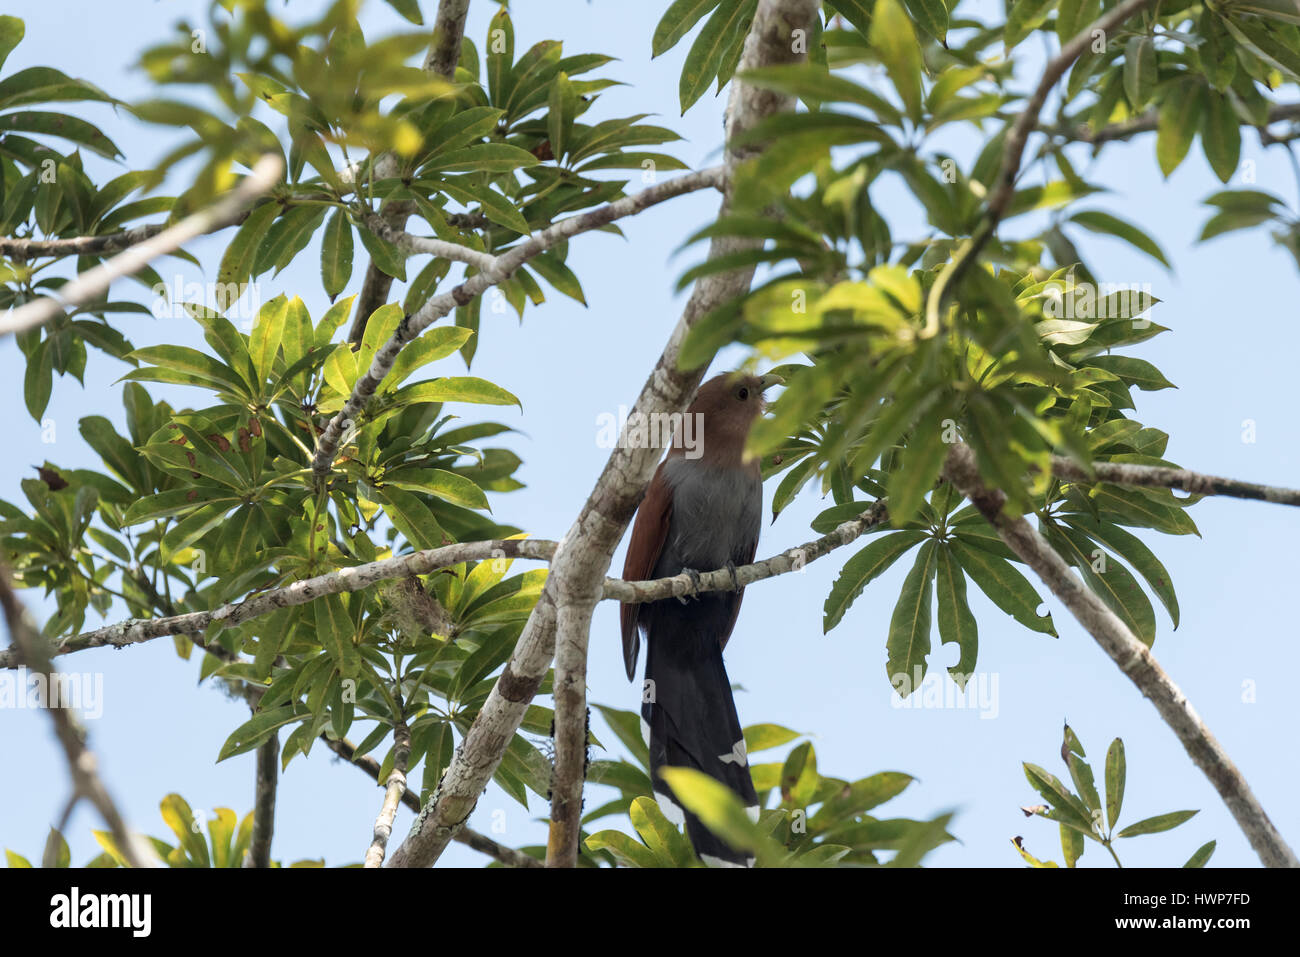 A Squirrel Cuckoo (Piaya cayana) perched in a tree - Stock Image